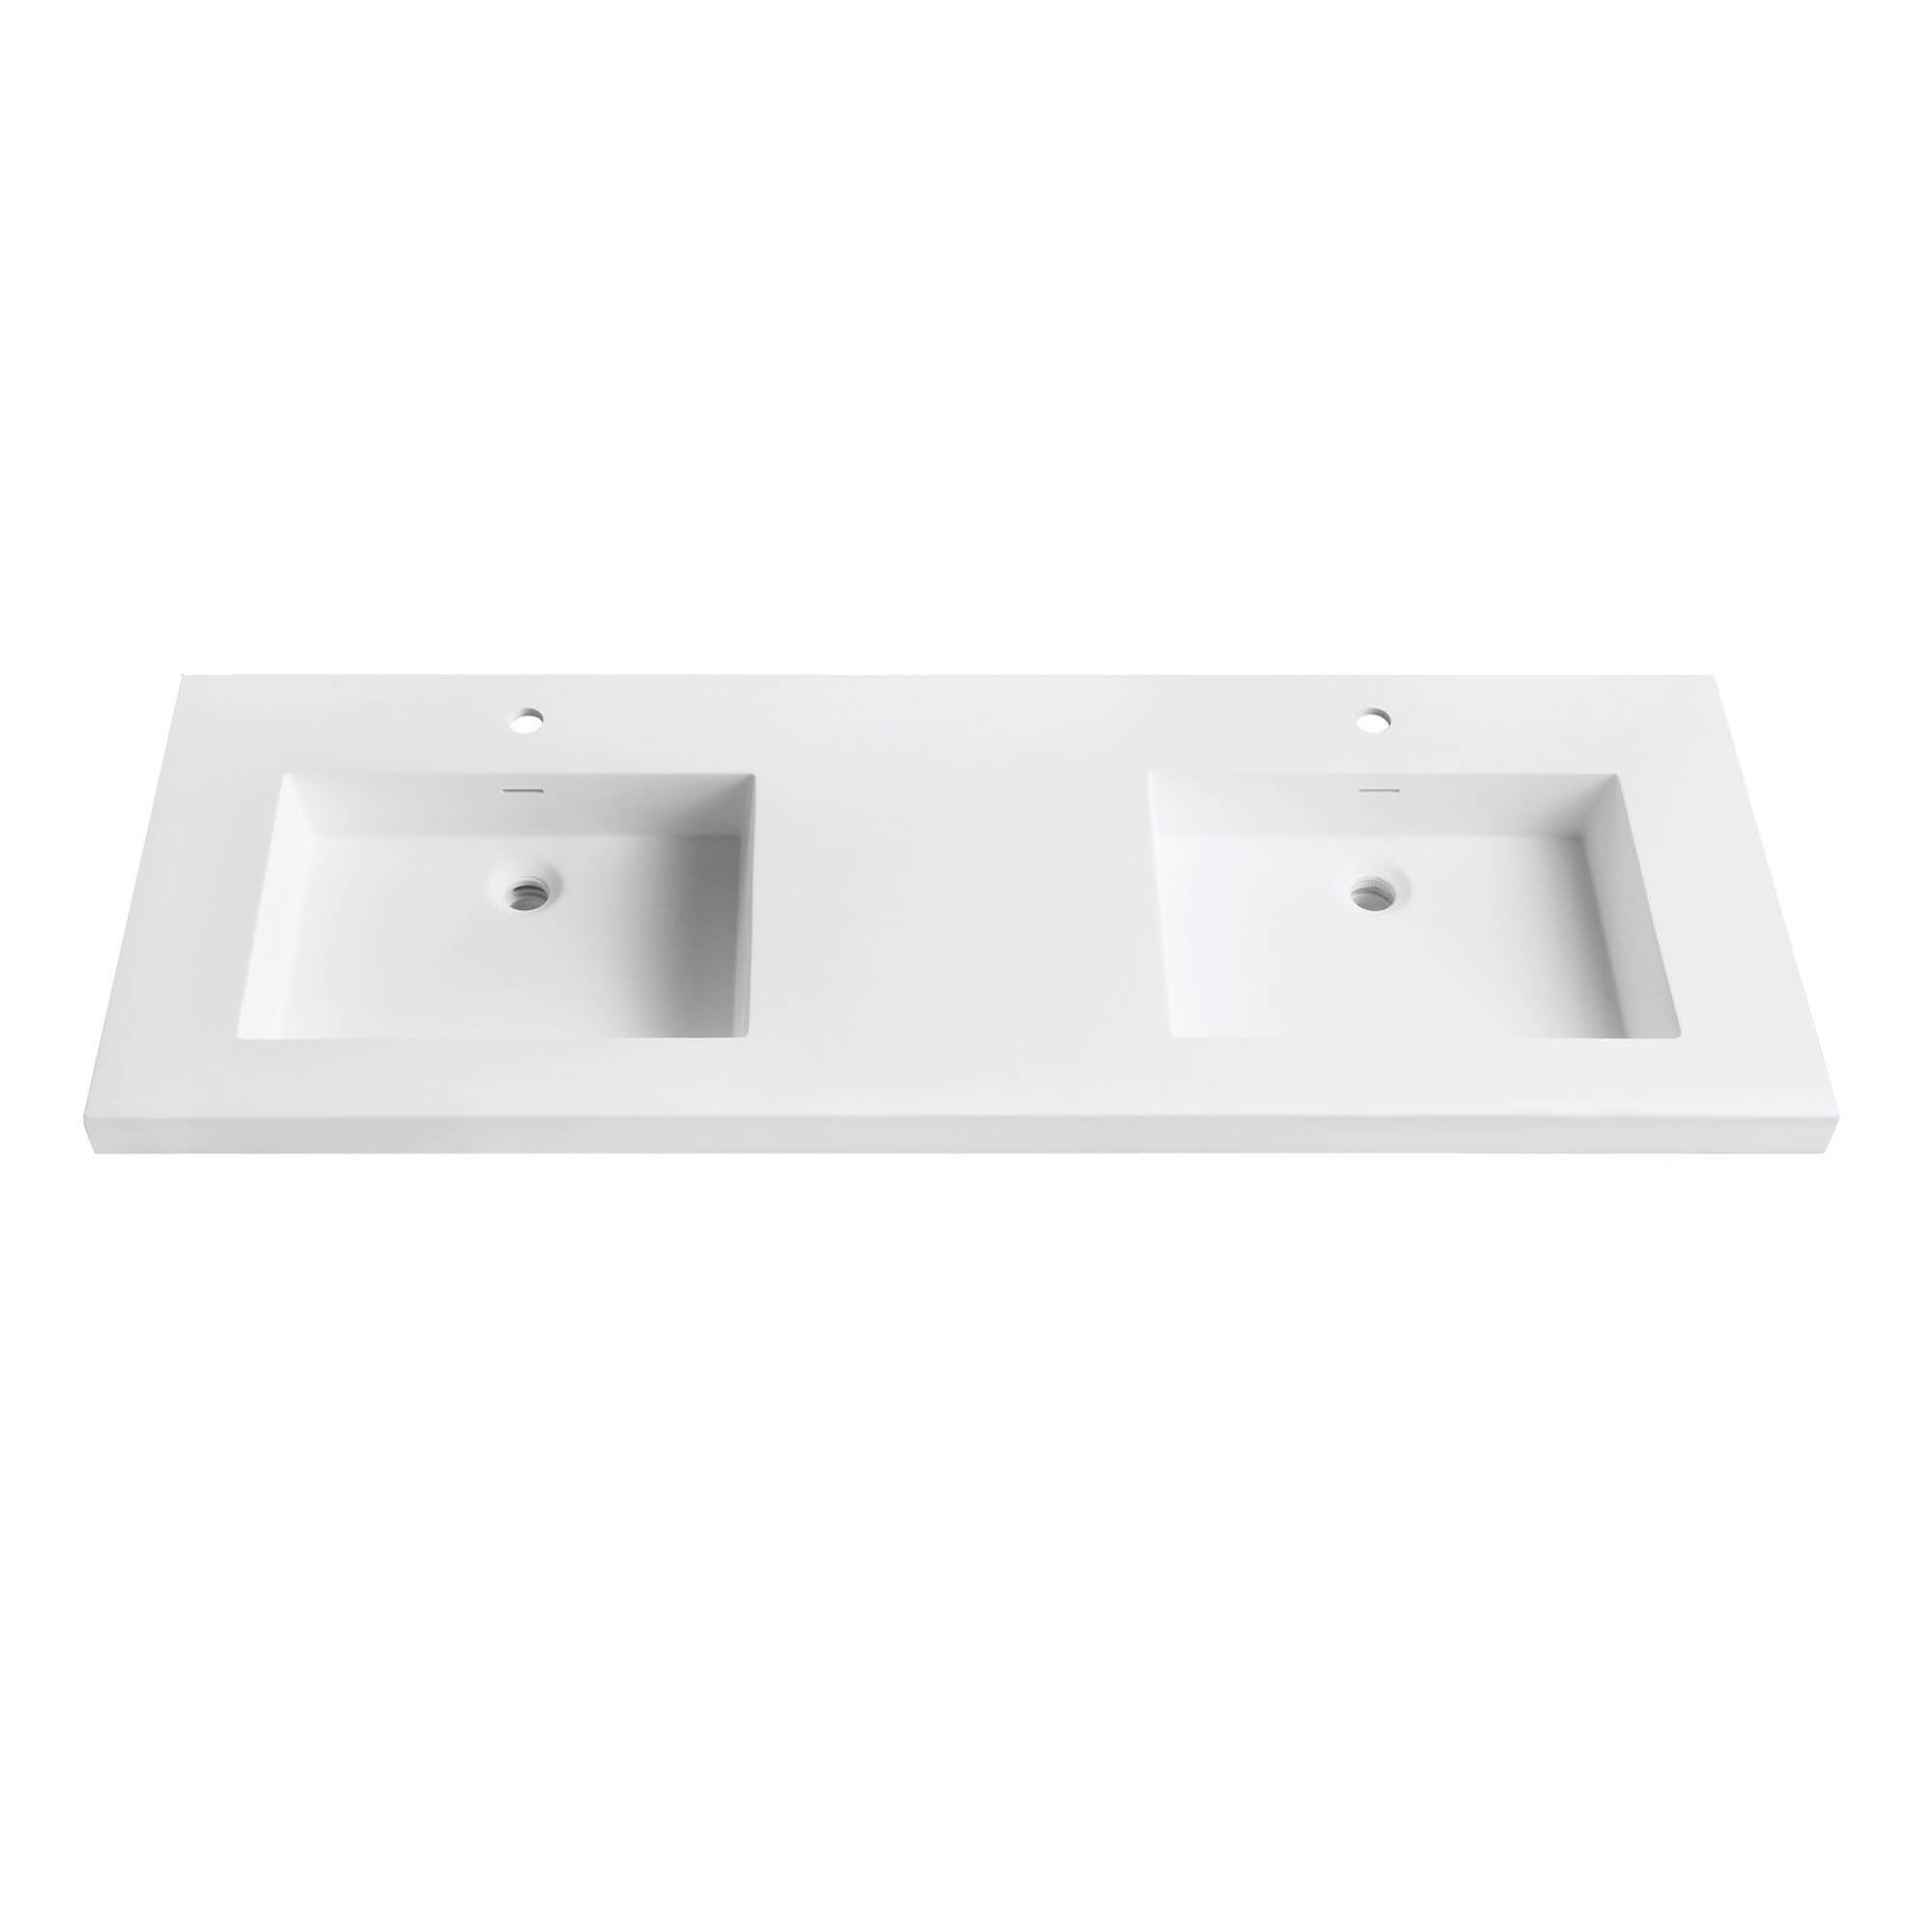 Avanity Versastone 61 Inch Solid Surface Vanity Top Free Shipping Today 11047043